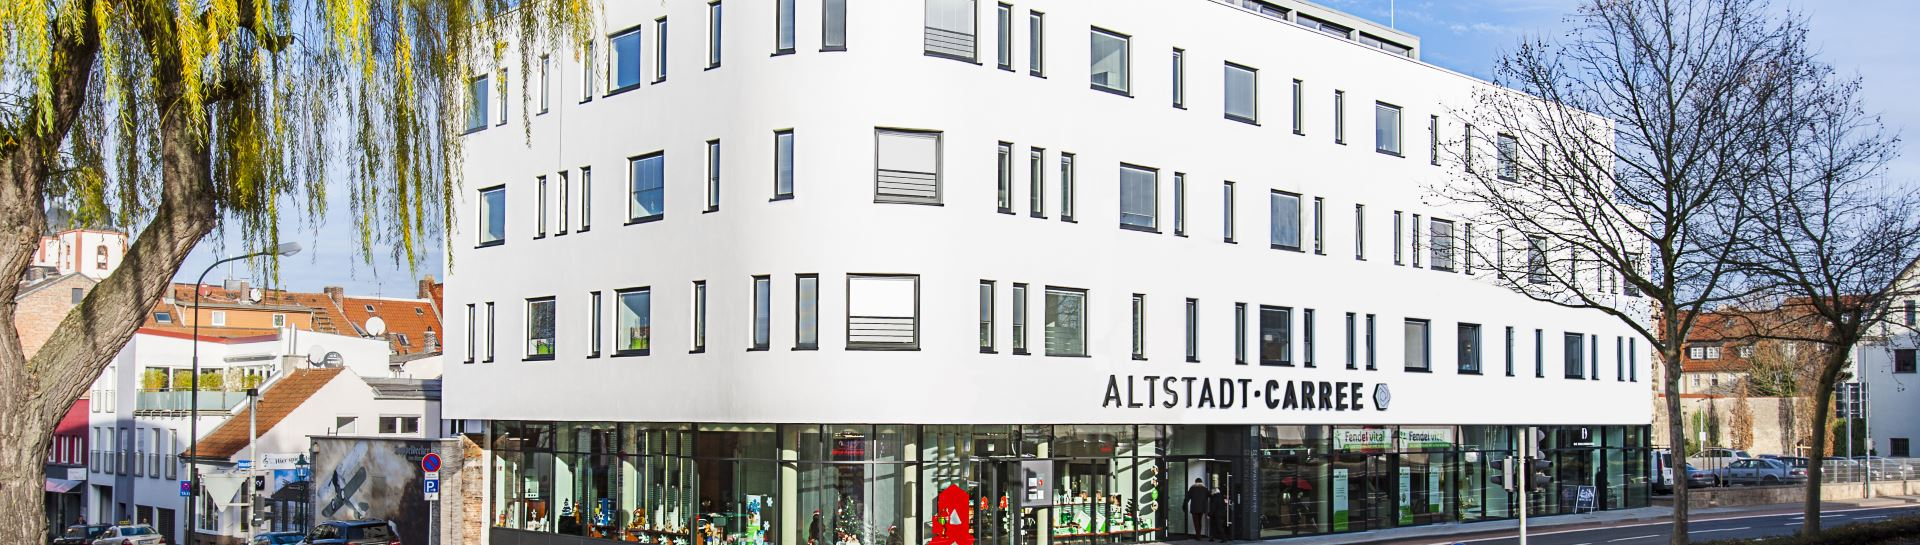 Altstadt-Caree Fulda Medical Centre (Fulda, Germany)